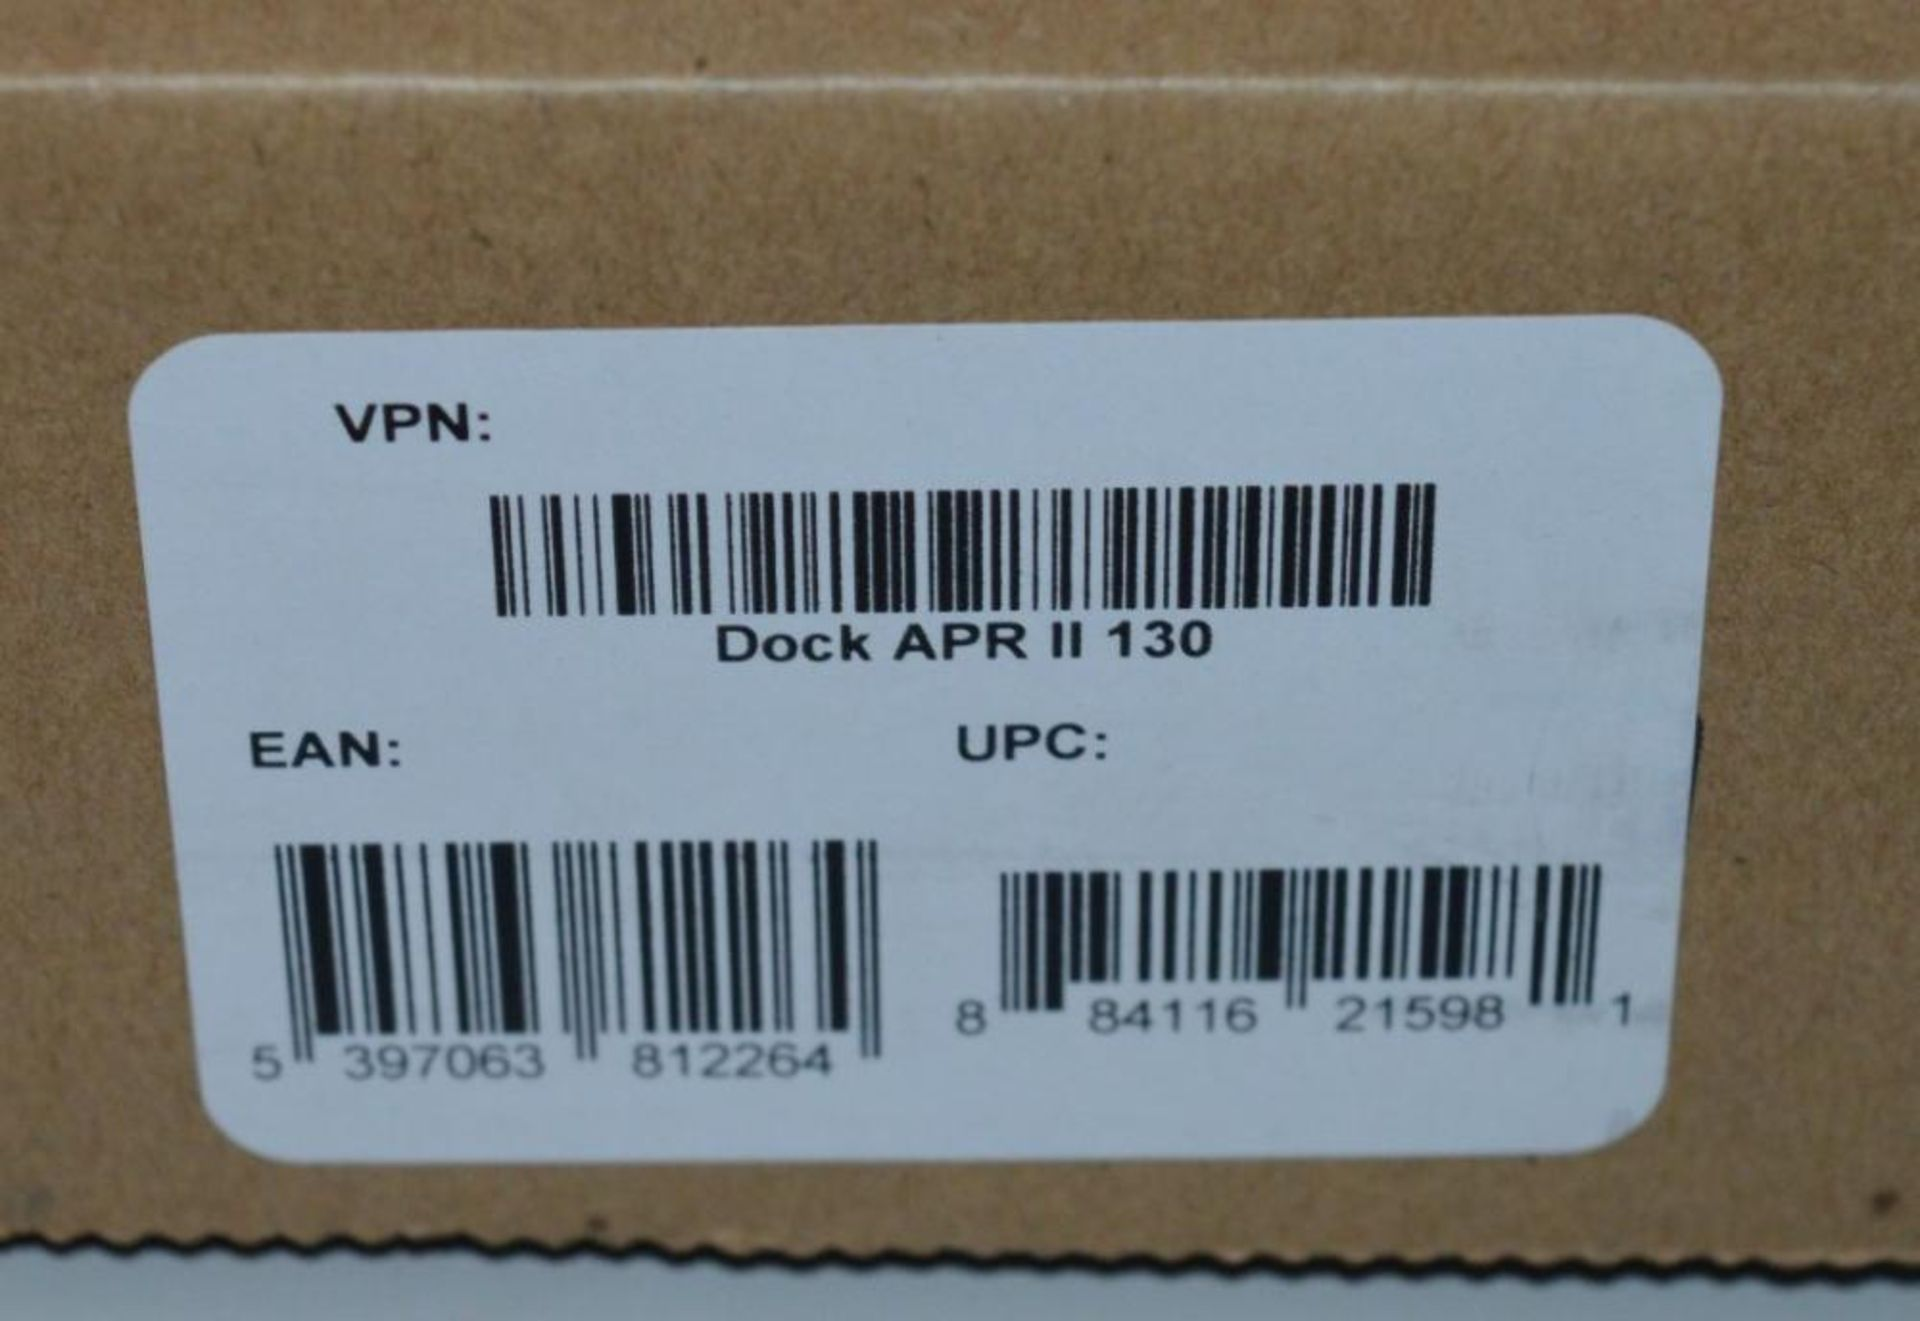 Lot 256 - 1 x Dell Docking Station Port Replicator Witrh USB 3.0 and 130w PSU - Eport II - New Boxed Stock -